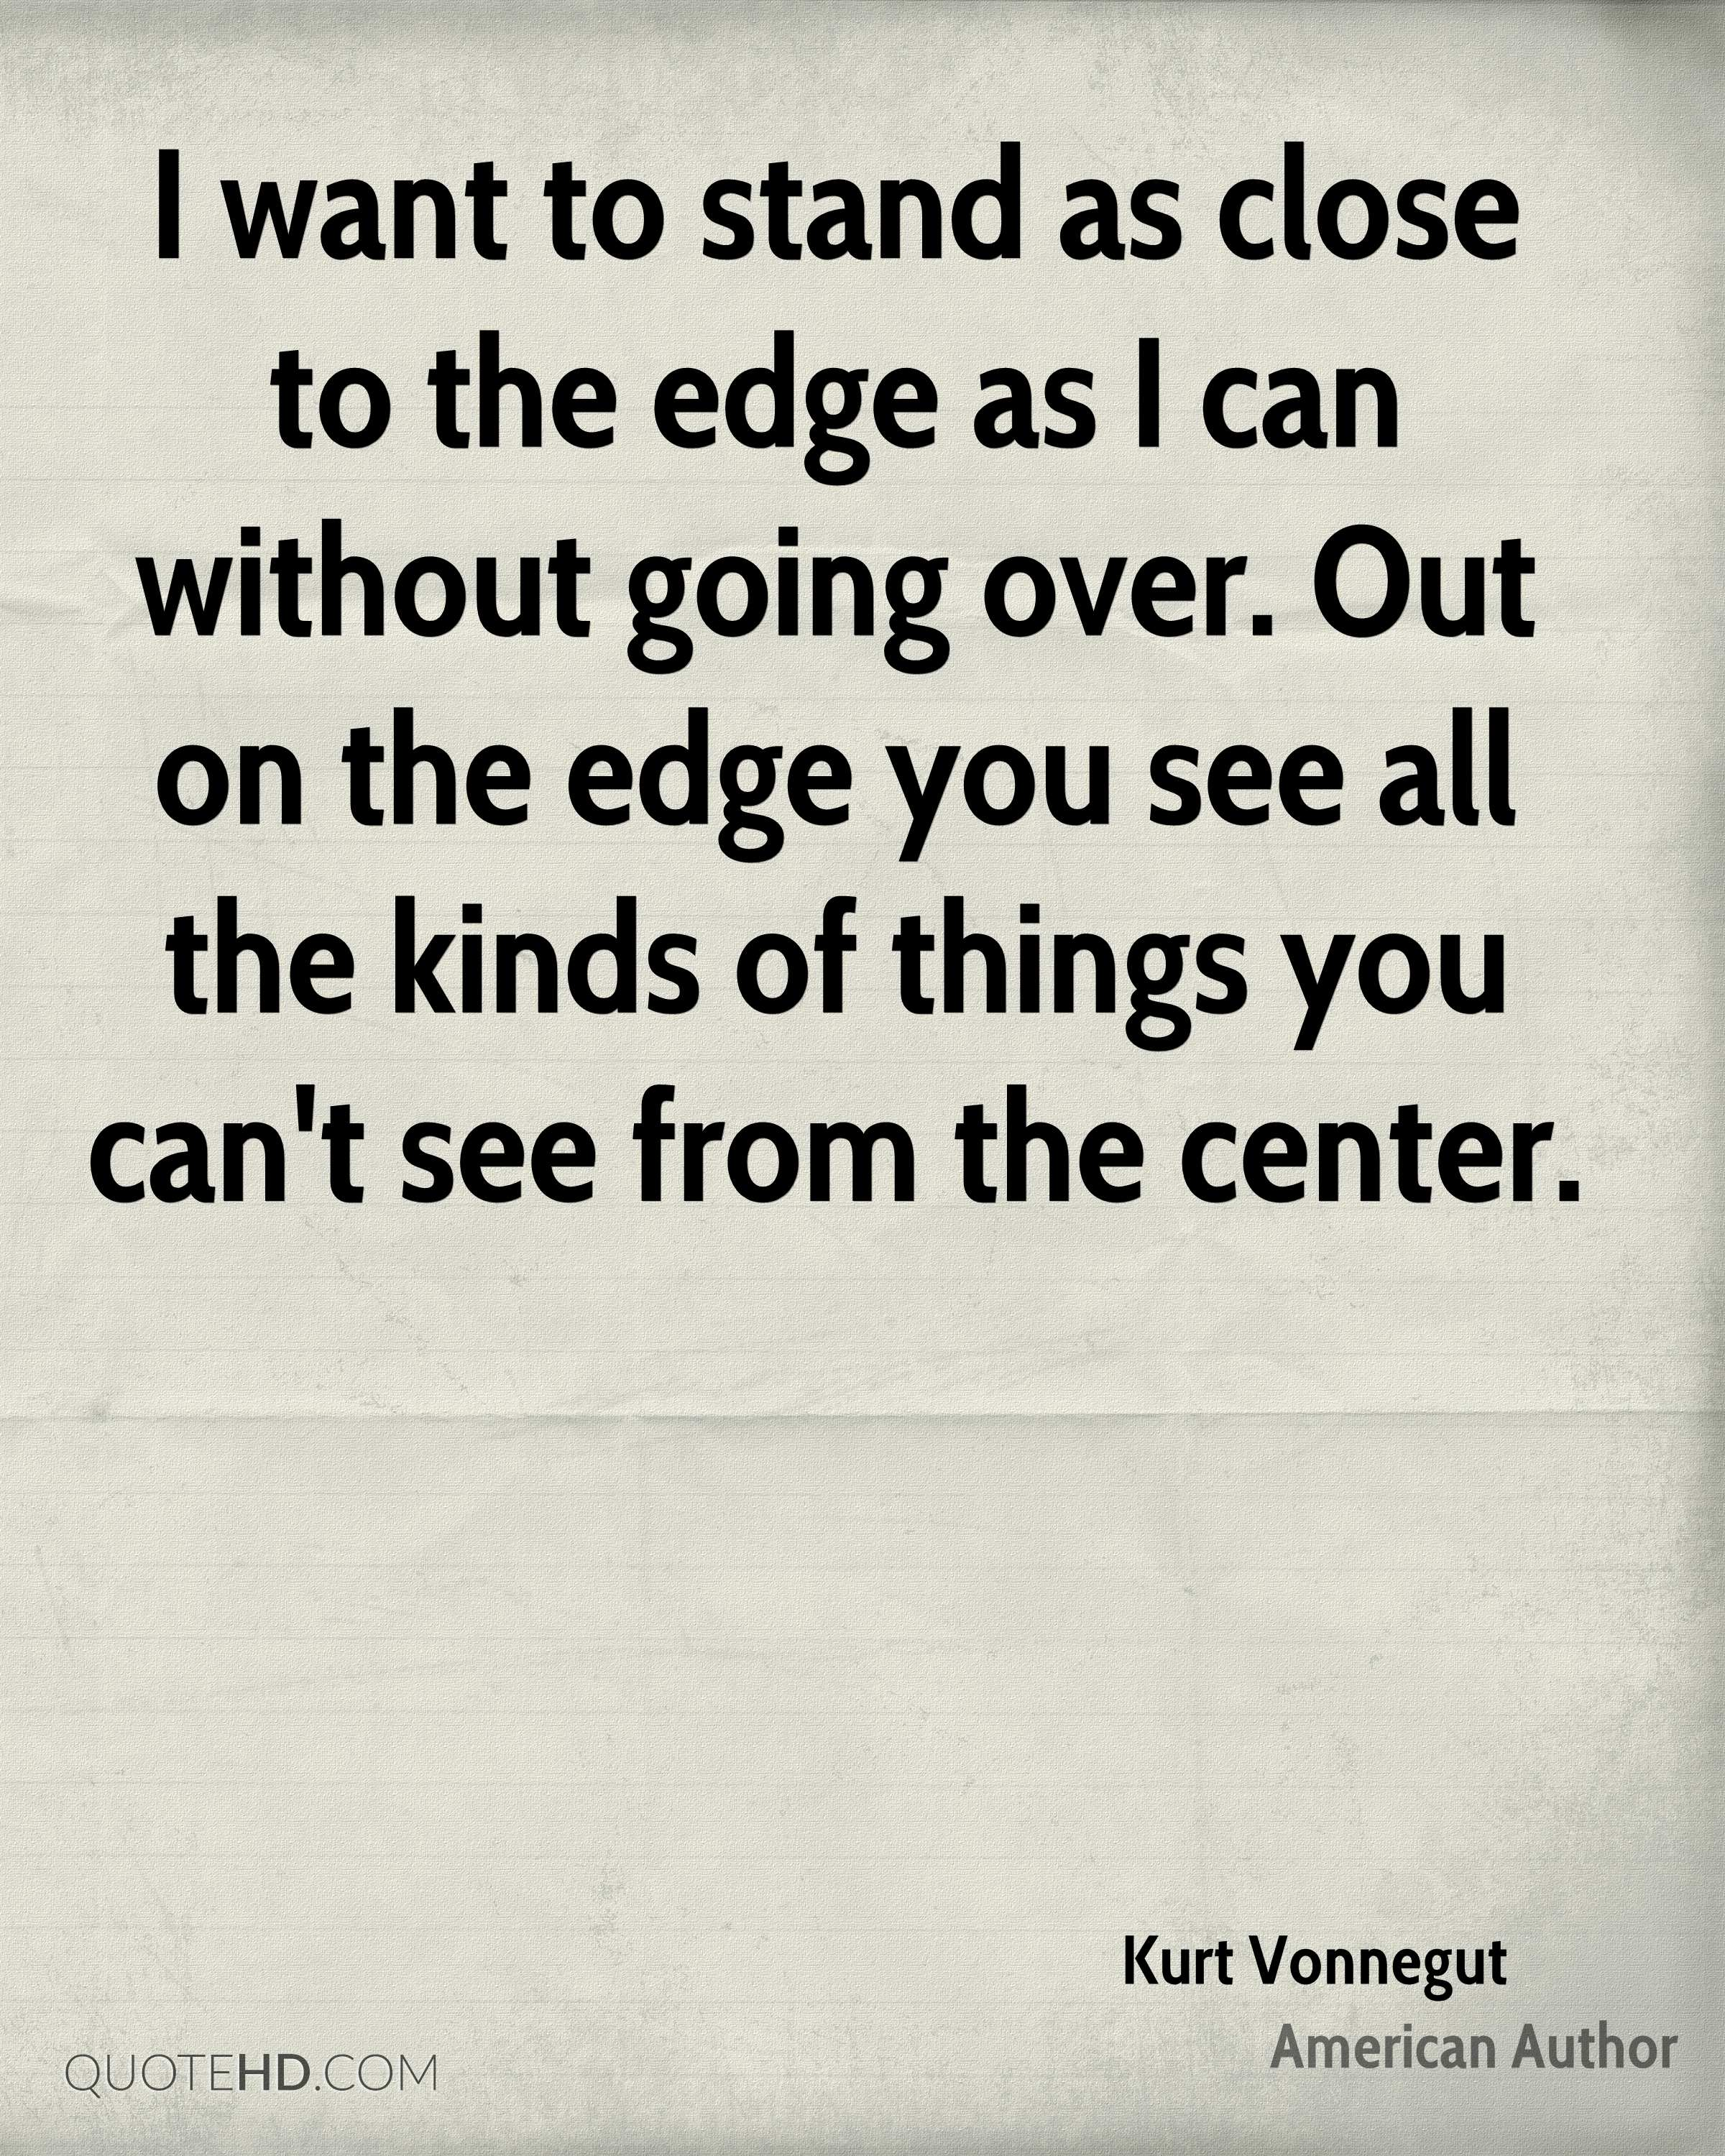 I want to stand as close to the edge as I can without going over. Out on the edge you see all the kinds of things you can't see from the center.